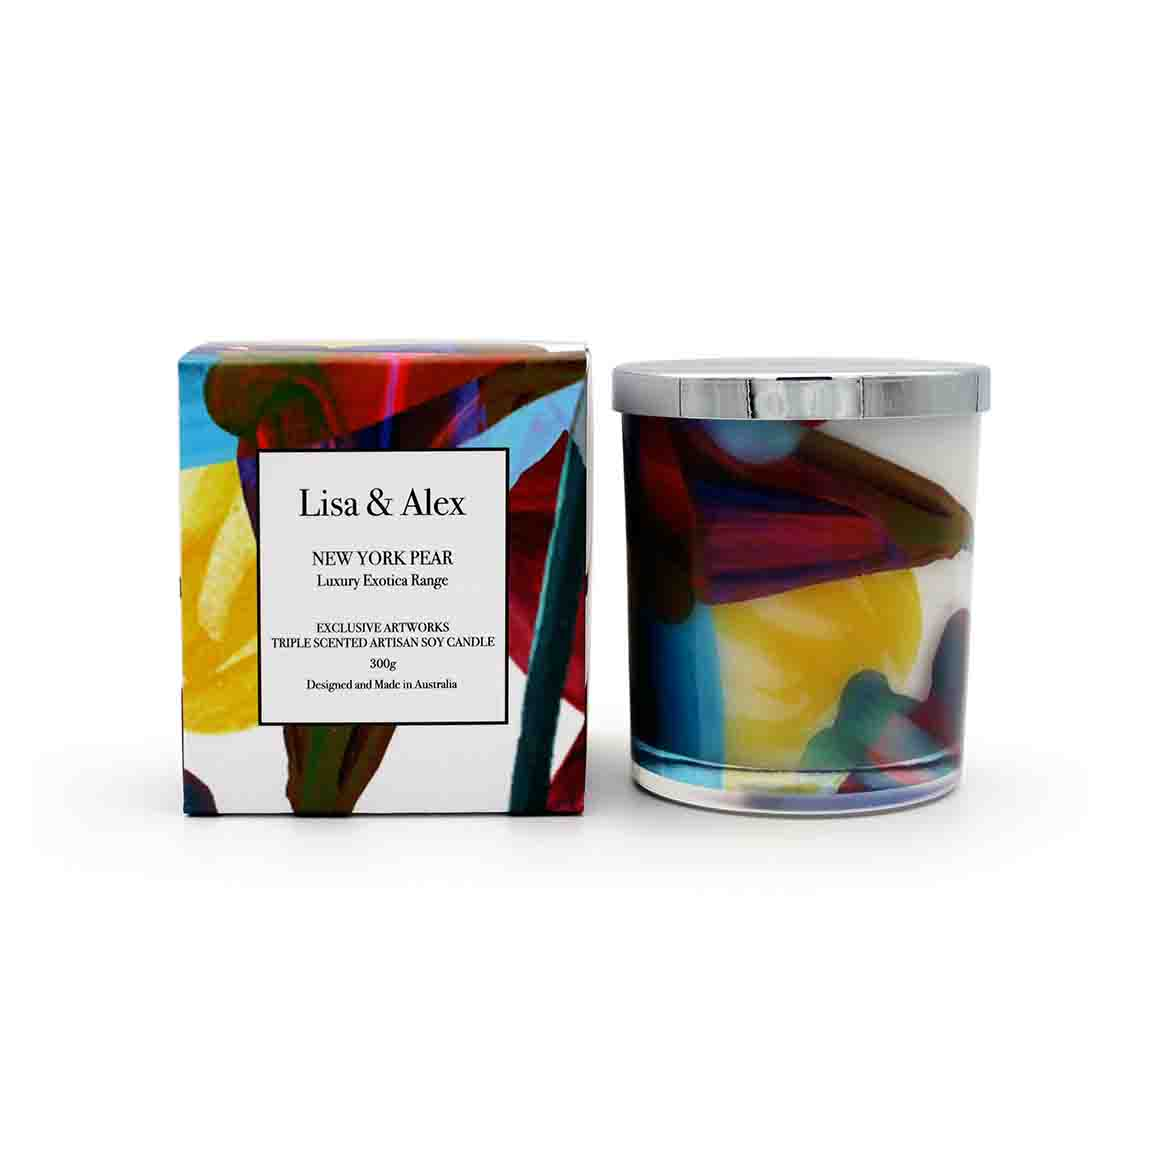 Lisa & Alex Hand Poured Pure Natural Soy Candle NEW YORK PEAR 300g | Trada Marketplace